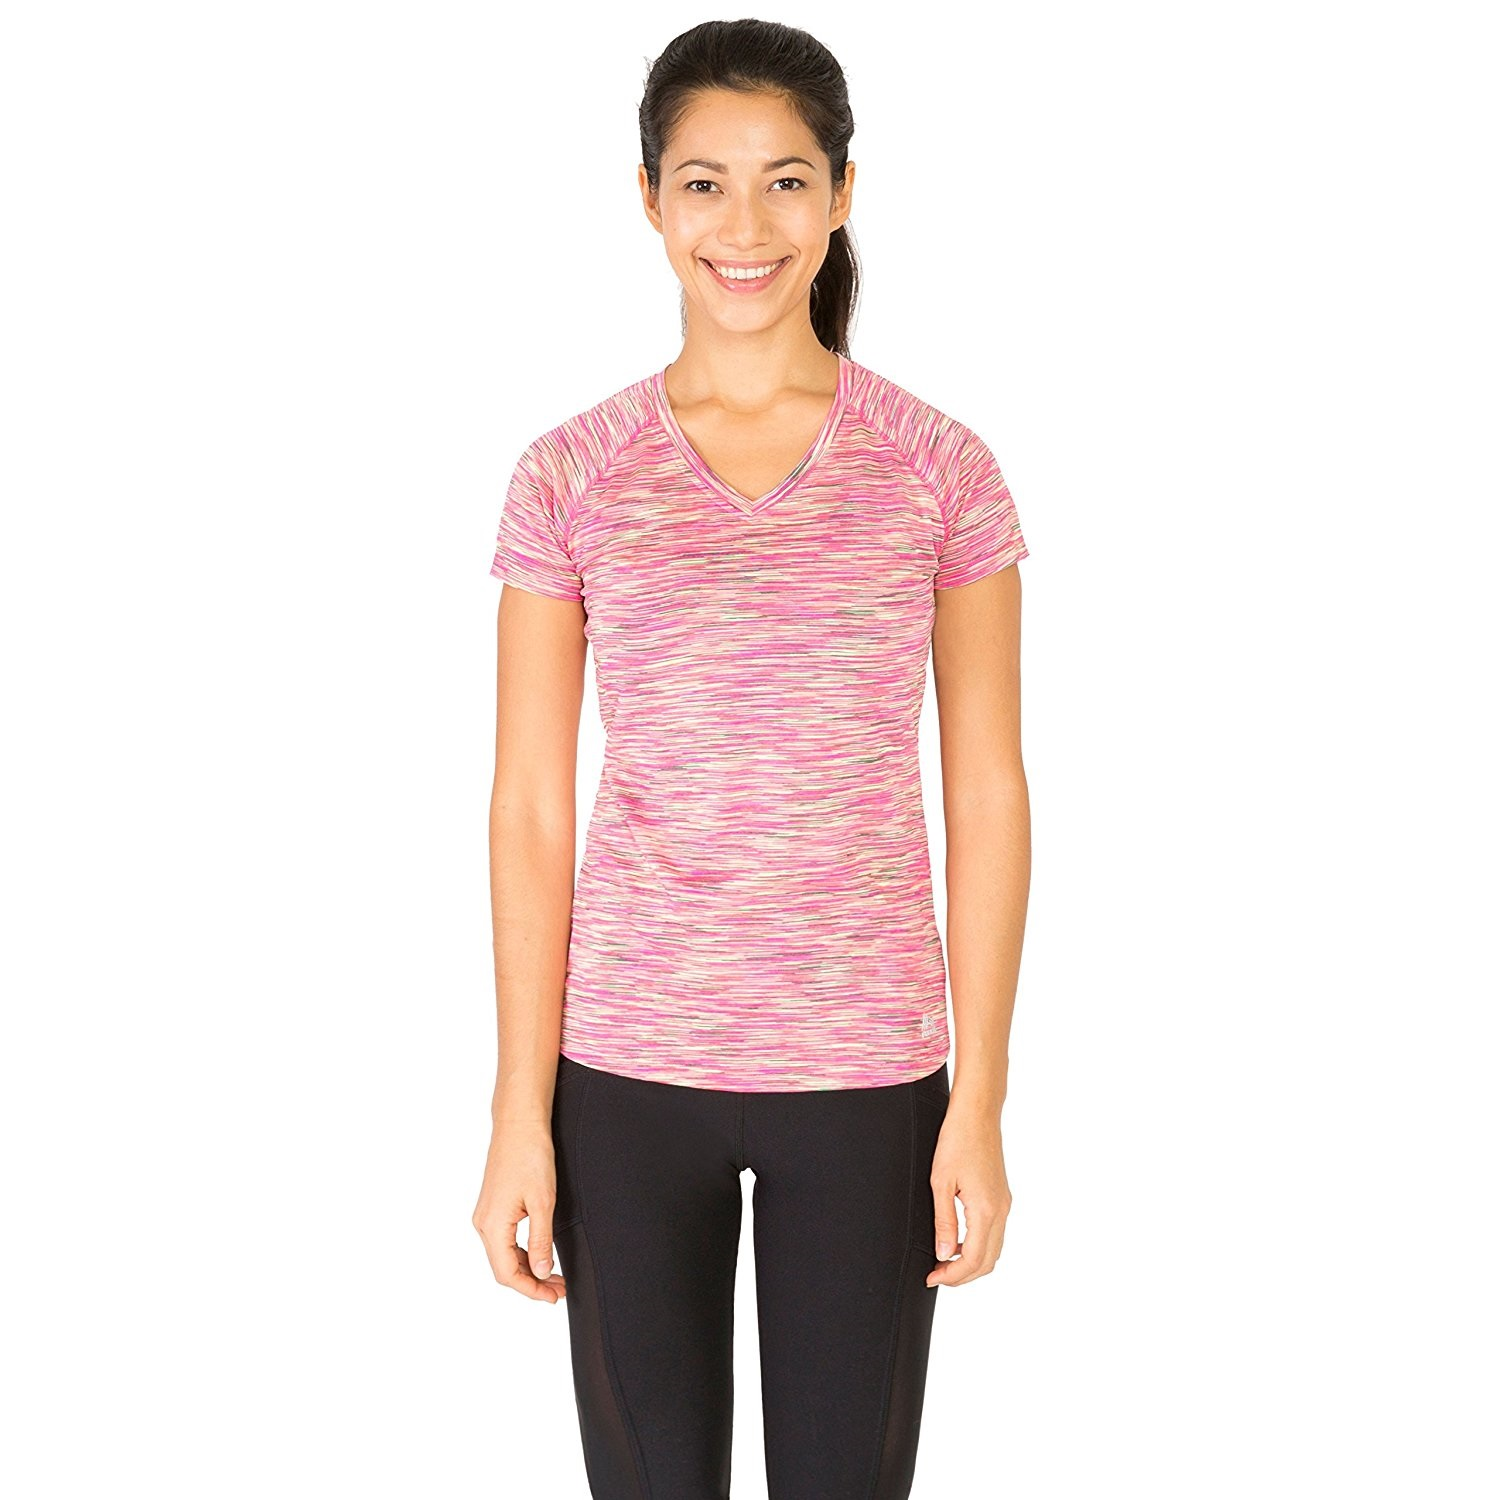 rbx womens space dye short sleeve v-neck pink grapefruit combo yoga tee shirt